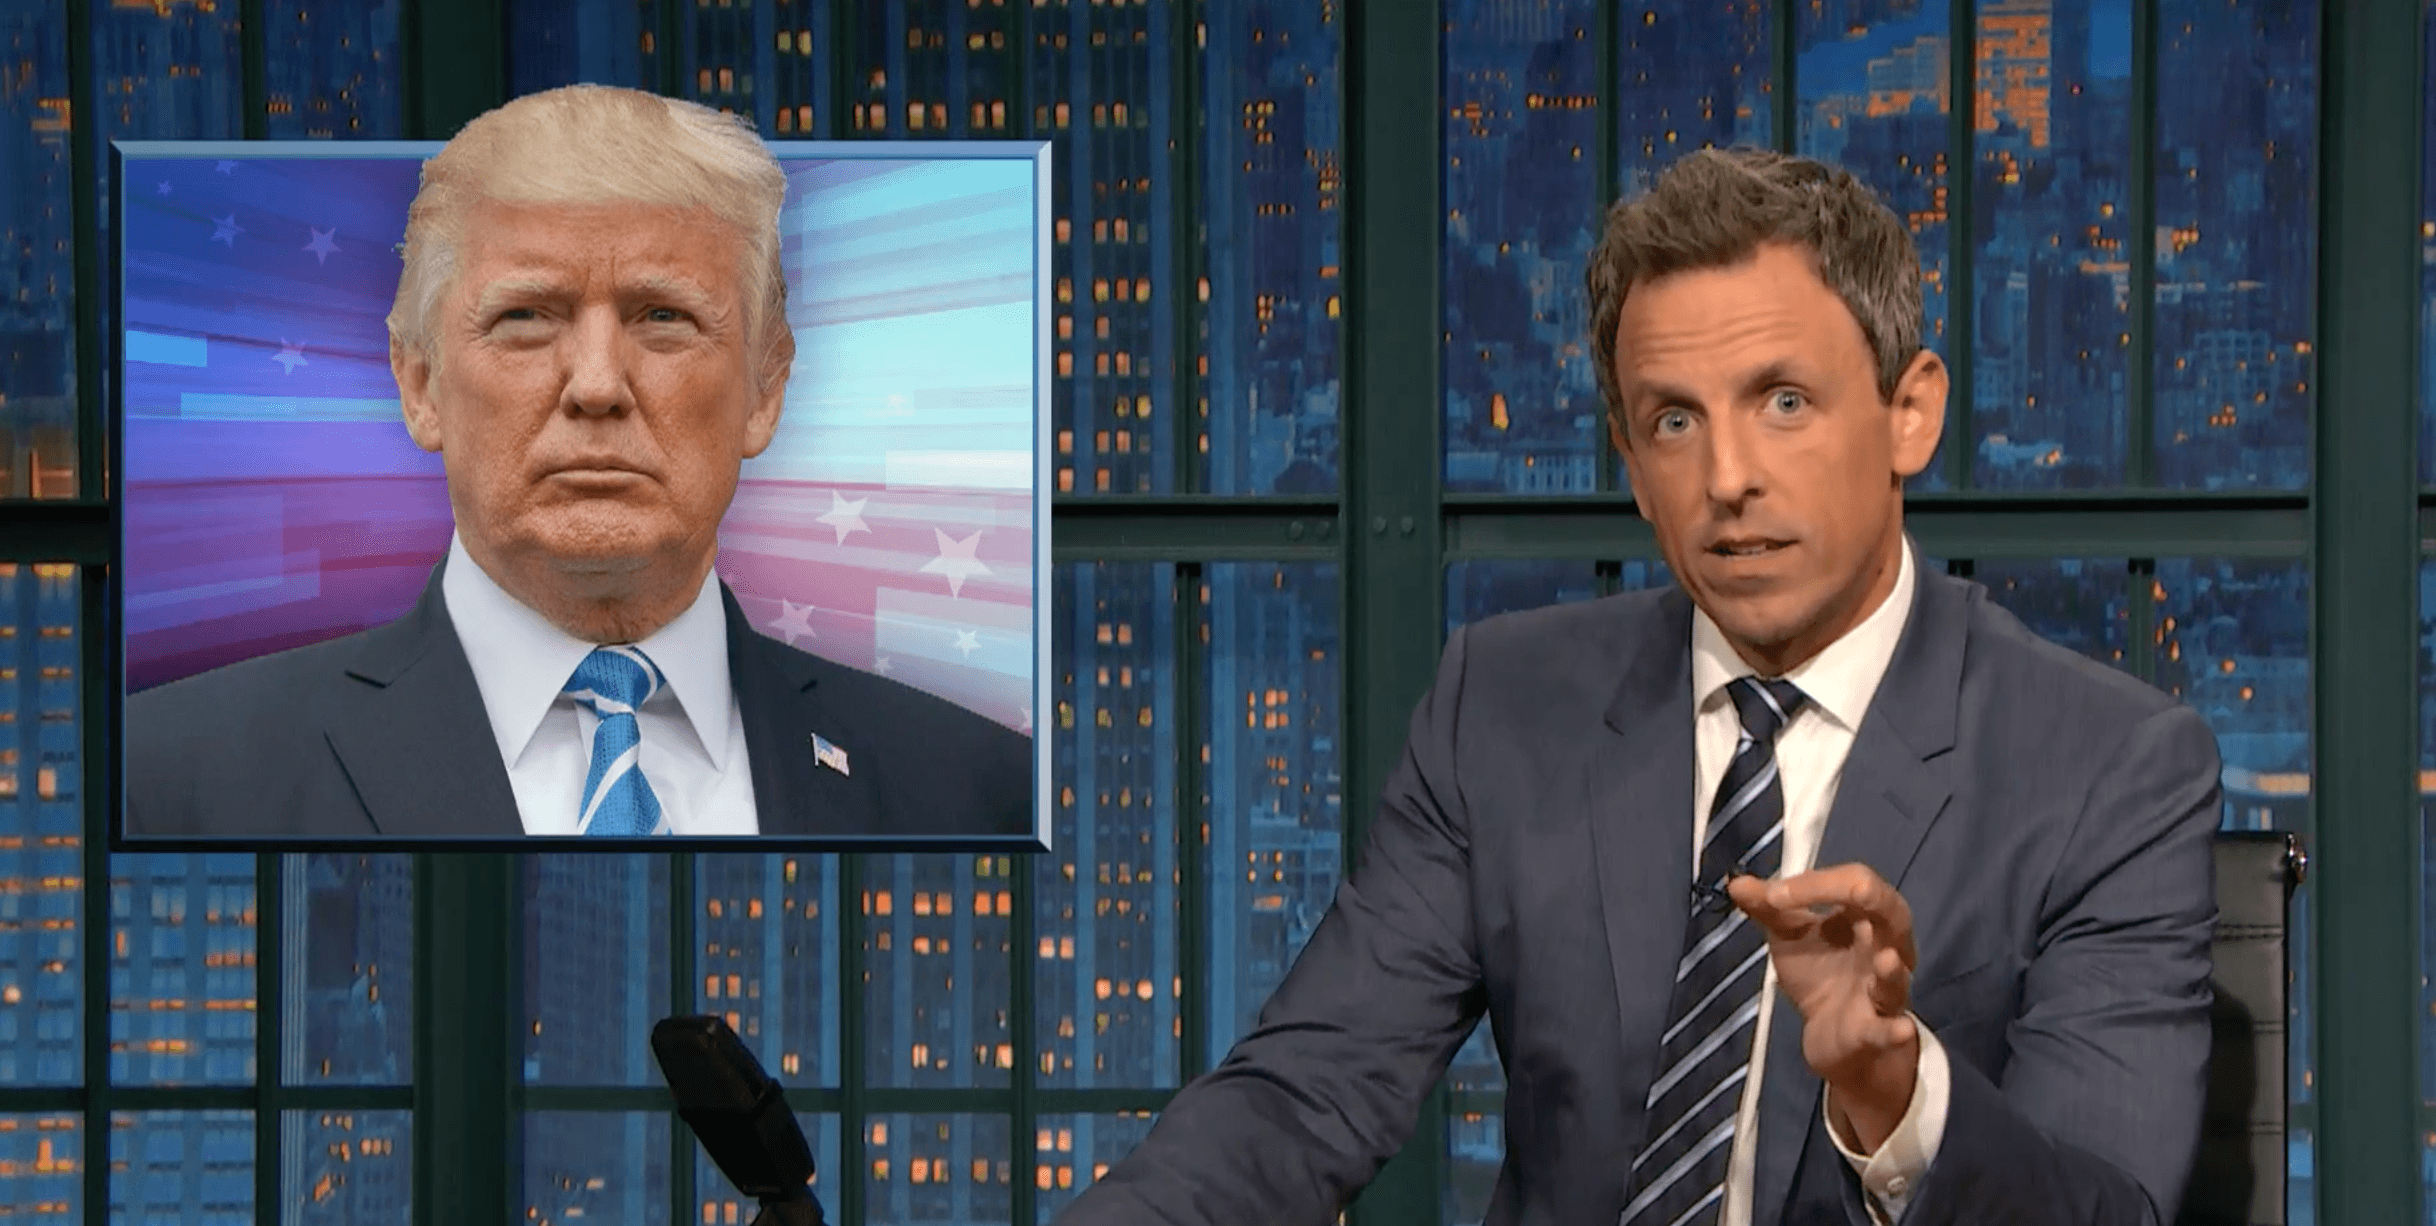 WATCH: Seth Meyers Calls Trump A 'Lying Racist' For Defending Neo-Nazis